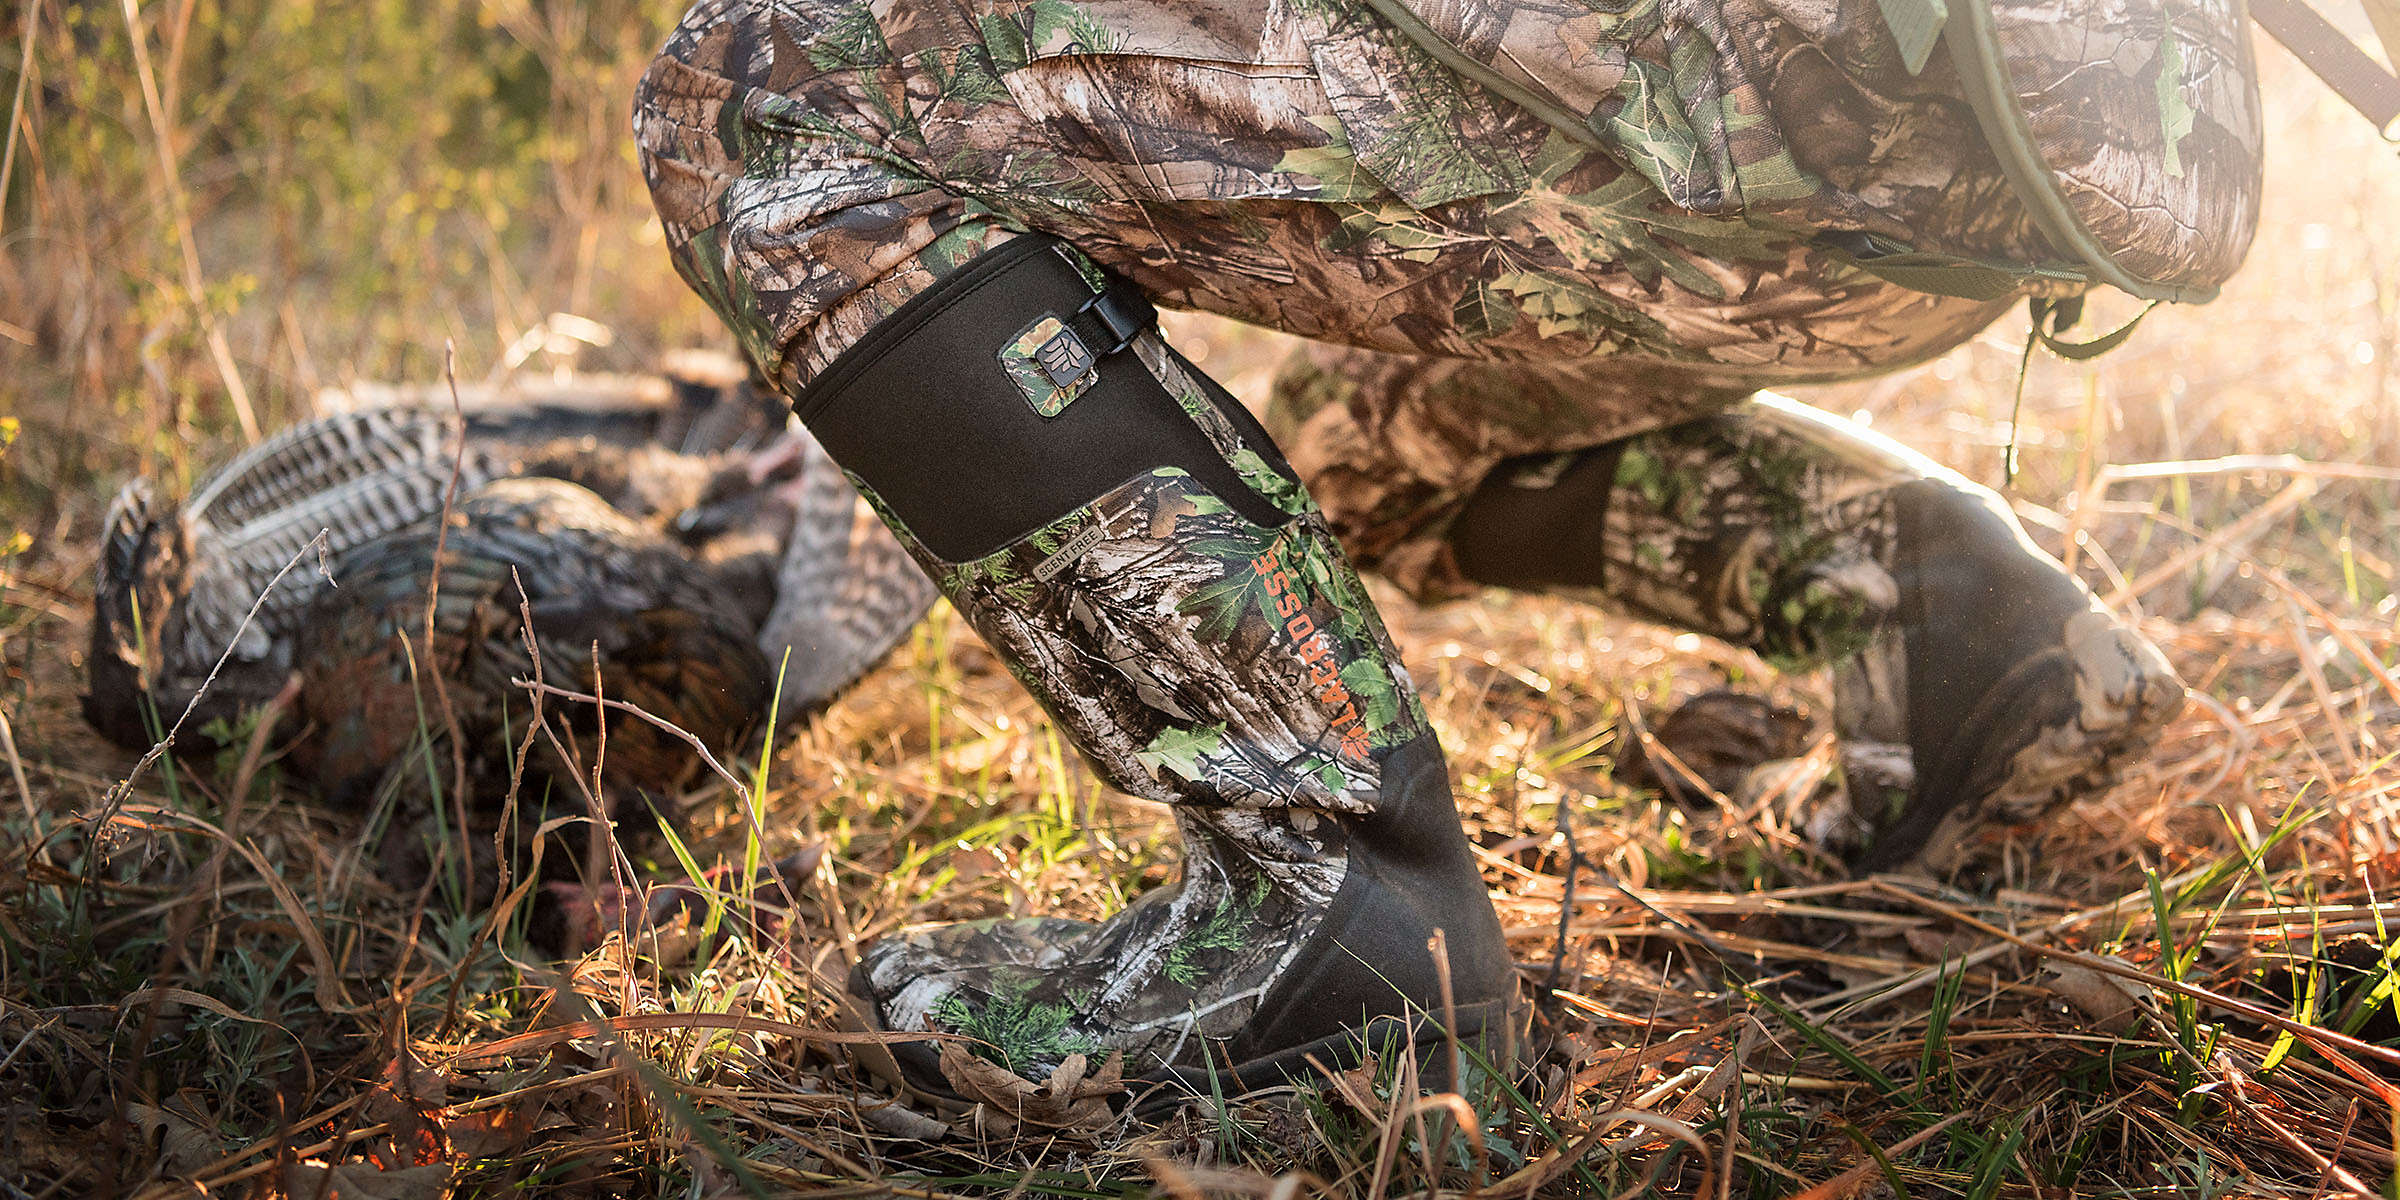 warmest boots for sitting in a treestand